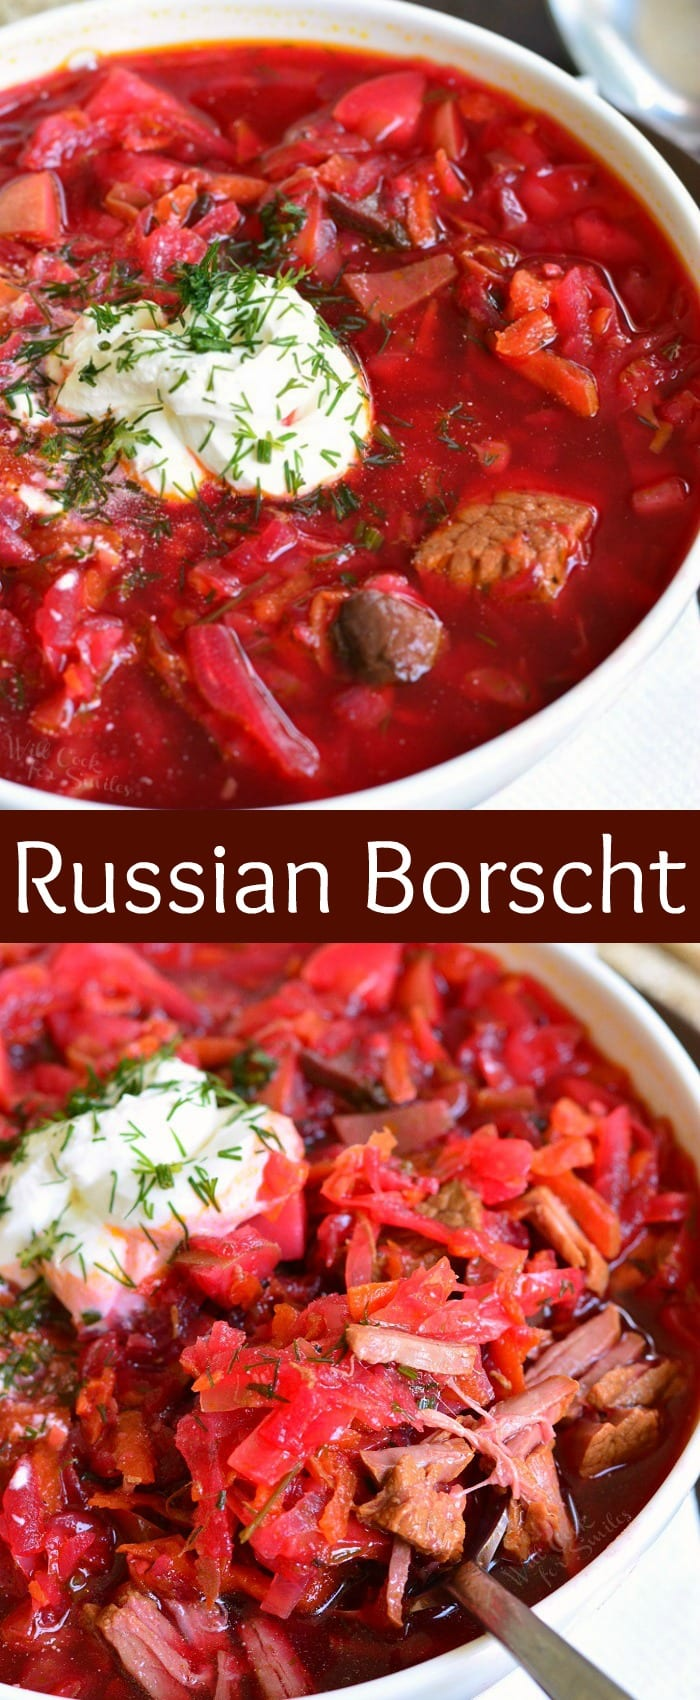 Russian Borscht Recipe. This classic Russian Borscht recipe is healthy, nutritious, and comforting soup for colder season. Traditional Russian beet soup made with cabbage, beef, and many other vegetables. #soup #cabbagesoup #beefsoup #borscht #russiansoup #russianrecipes